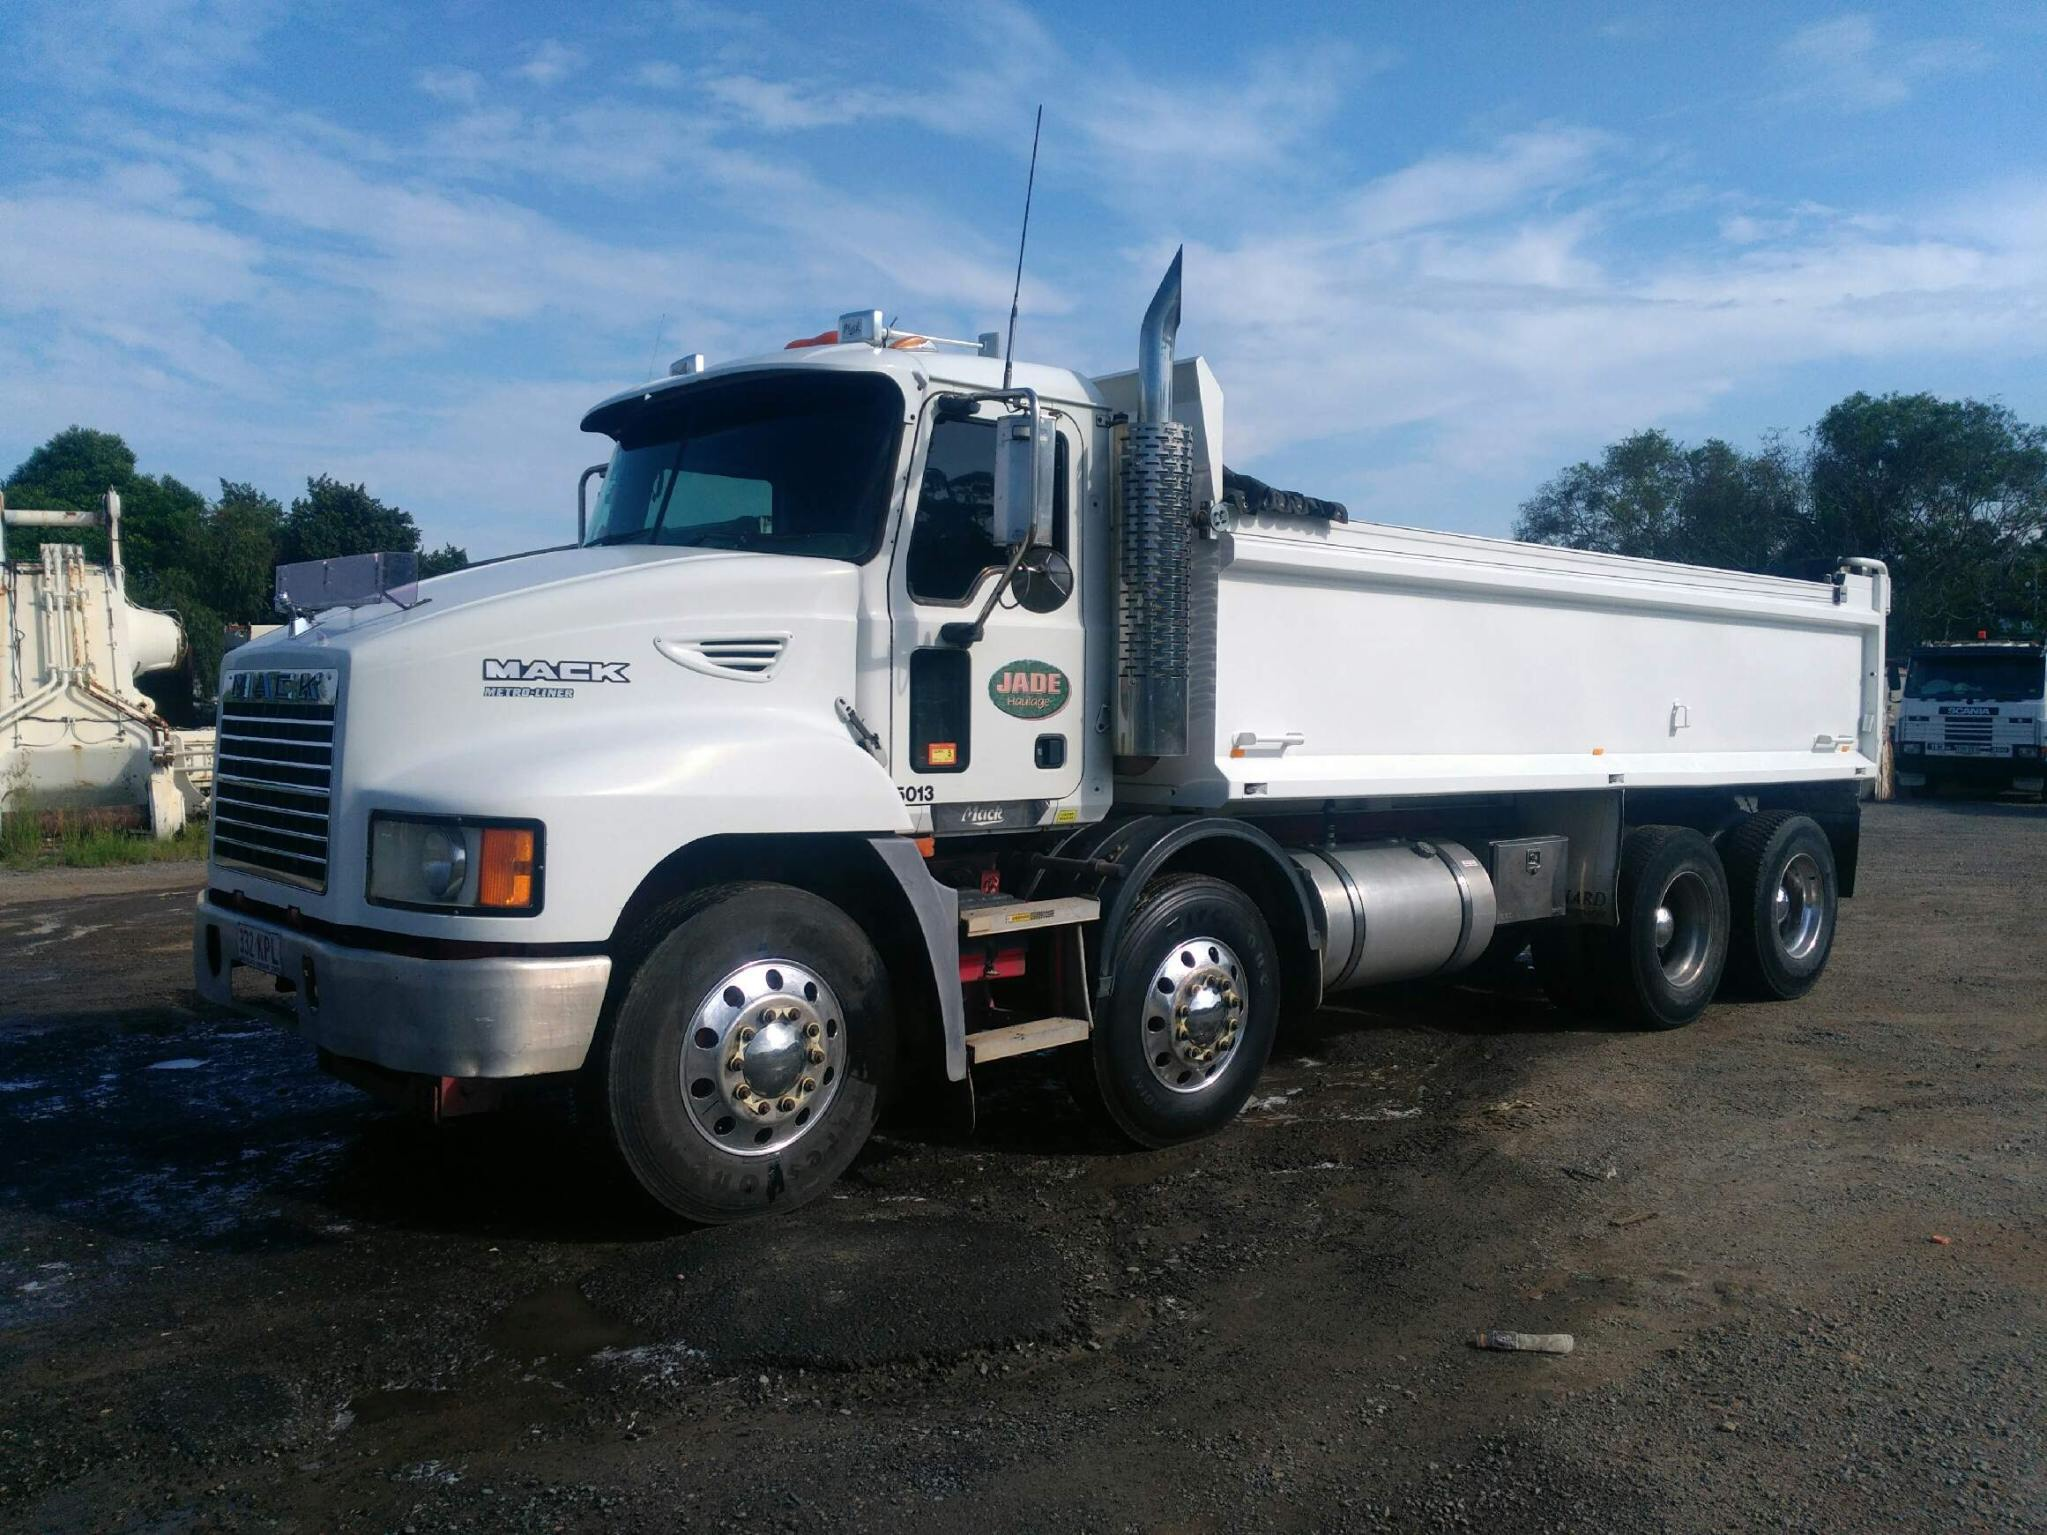 Asphalt Haulage with Contracts in place - $200,000 net to owner